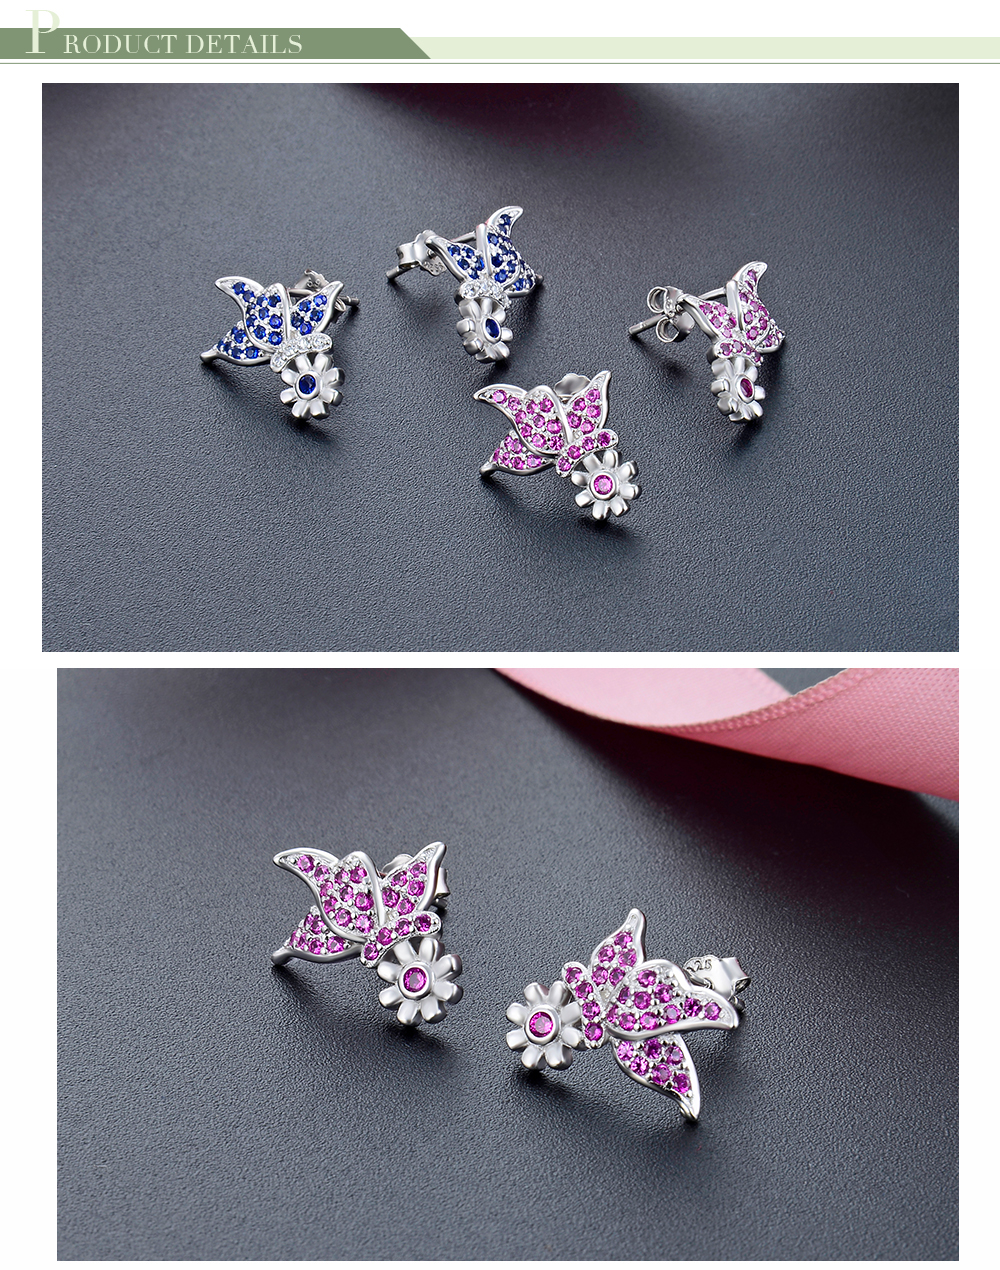 F.ZENI wholesale vintage earrings women stud earrings 925 silver sterling for women